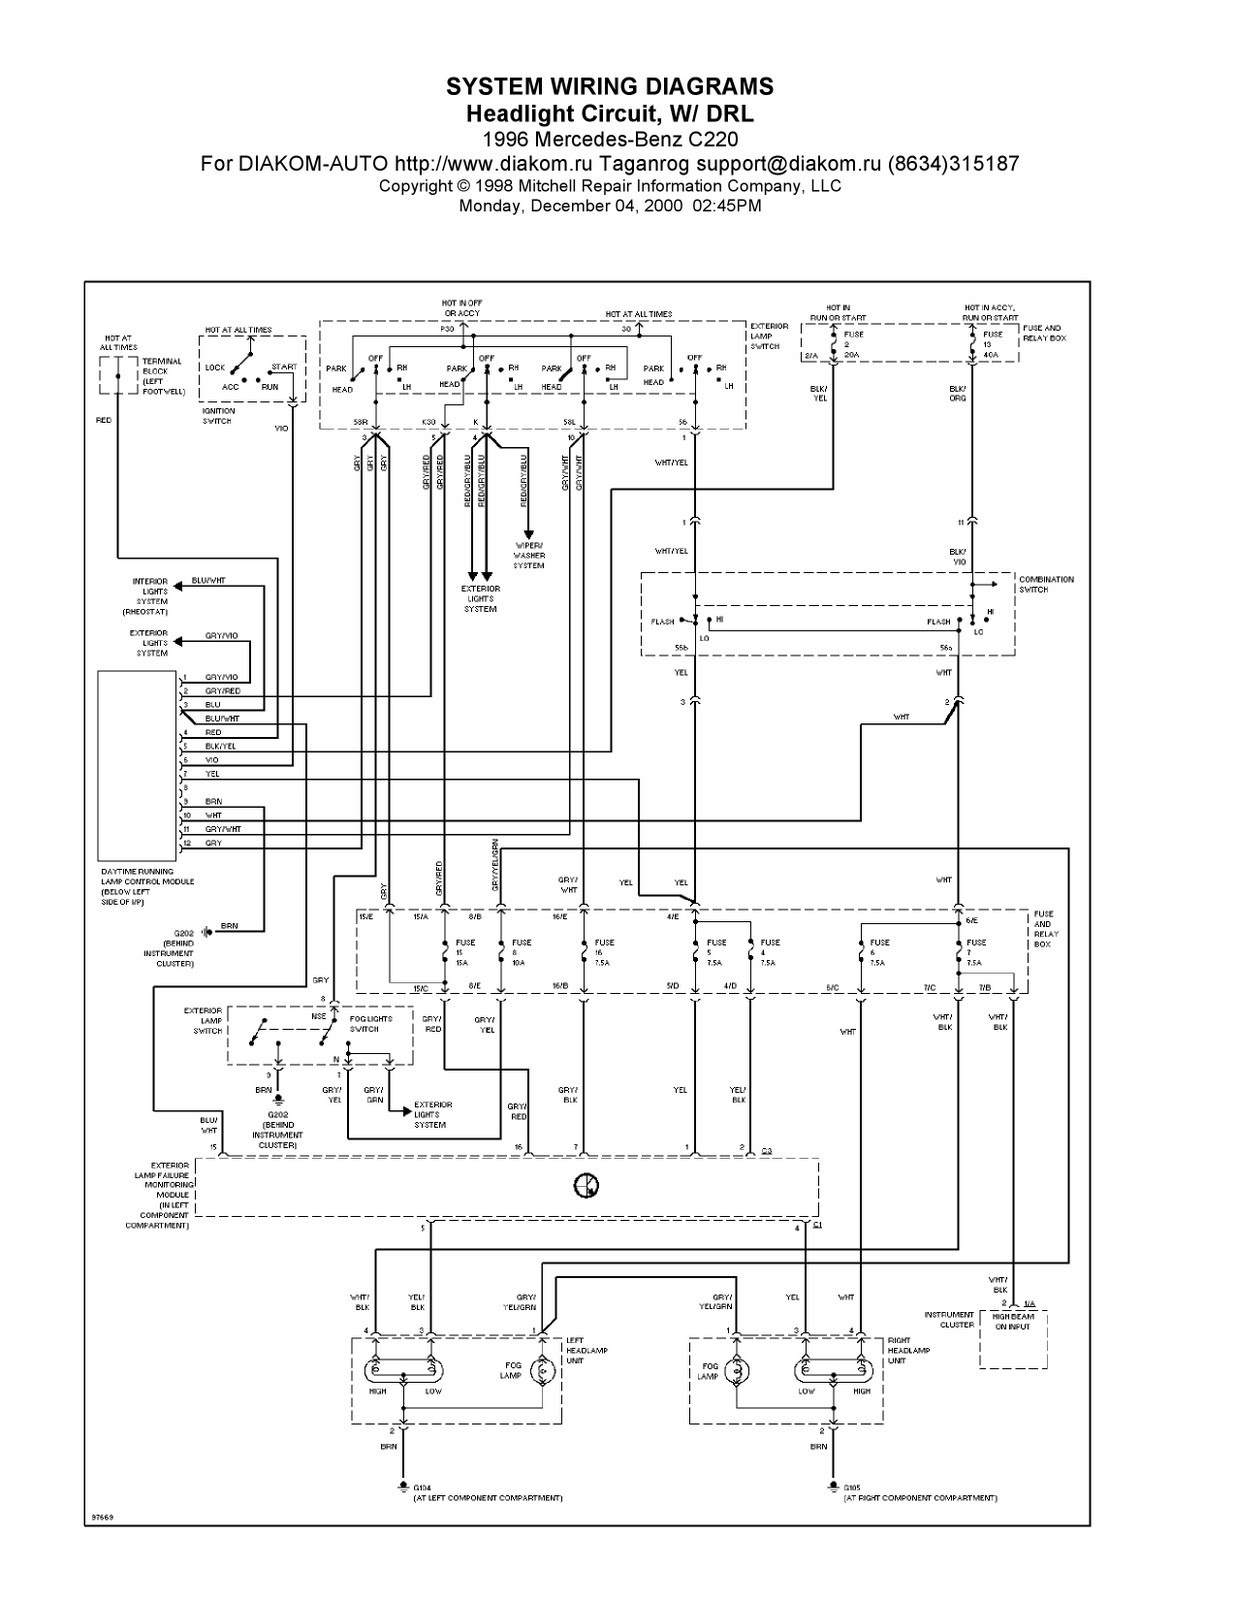 small resolution of mercedes benz electrical wiring diagrams wiring database librarymercedes electrical diagrams wiring diagrams schema mercedes benz 1990